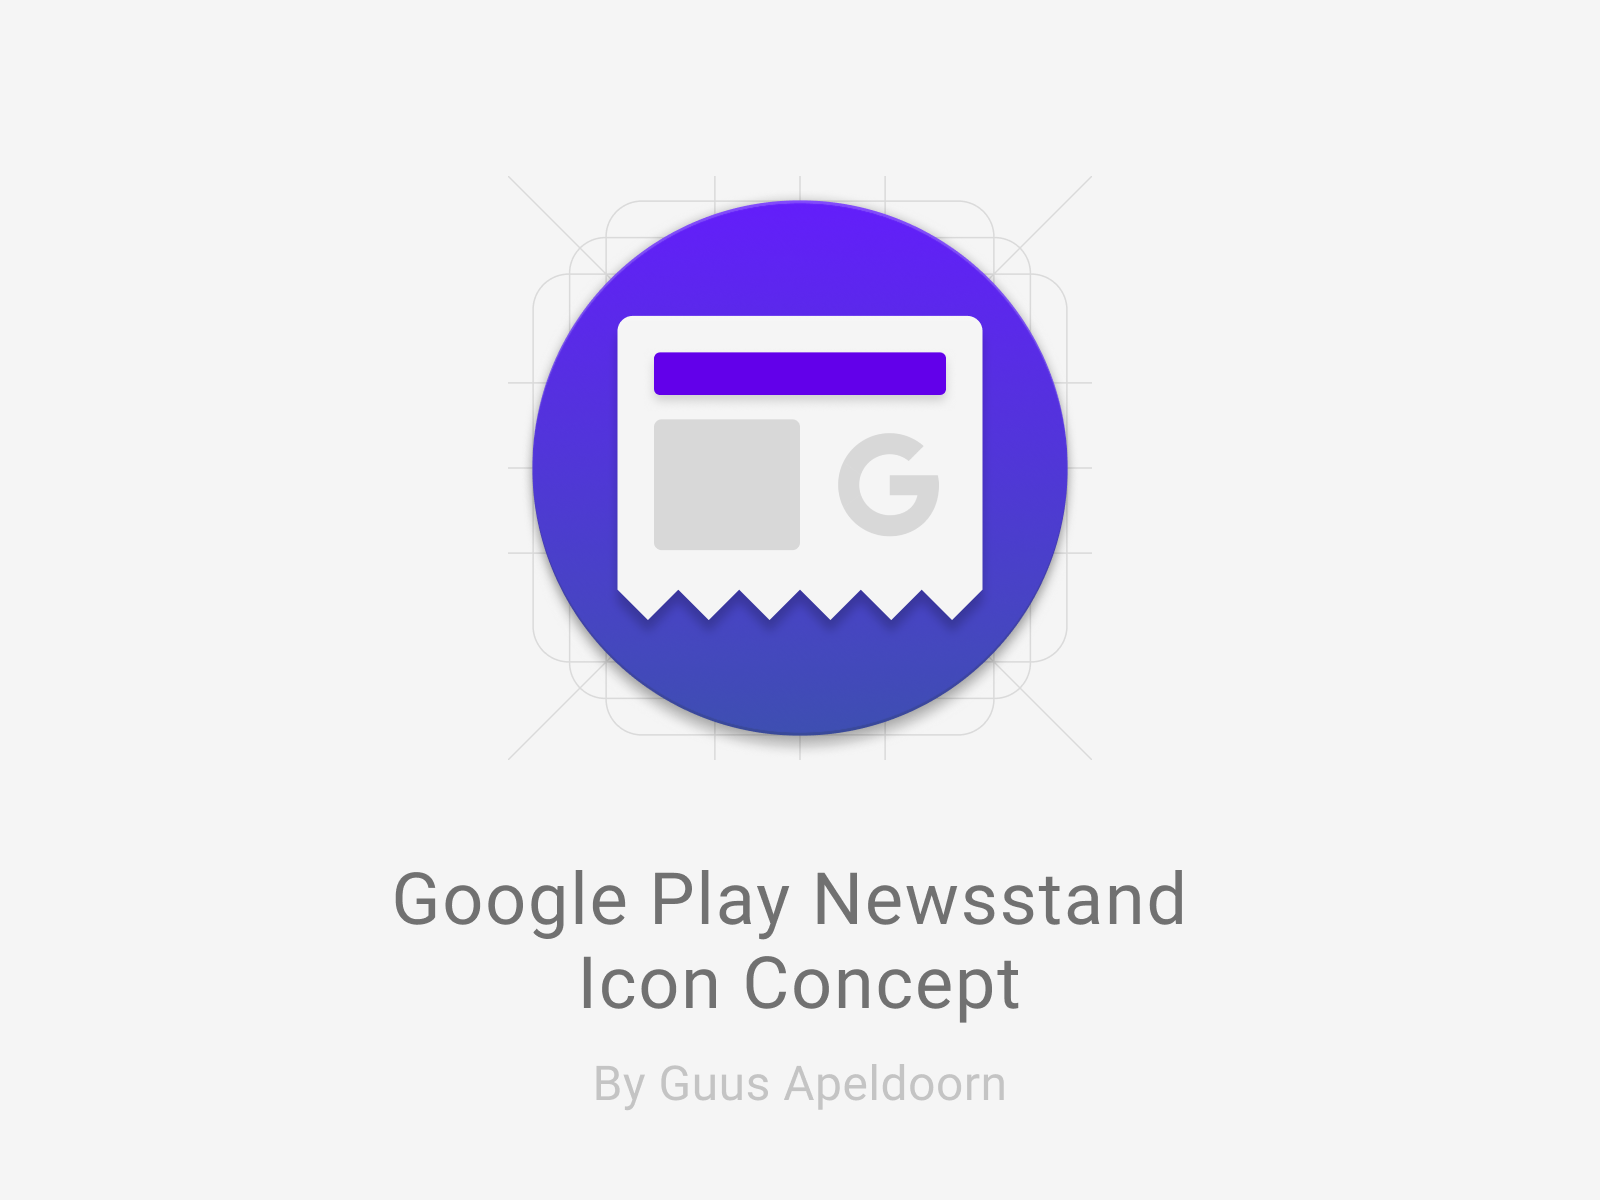 Google Play Newsstand Icon - UpLabs